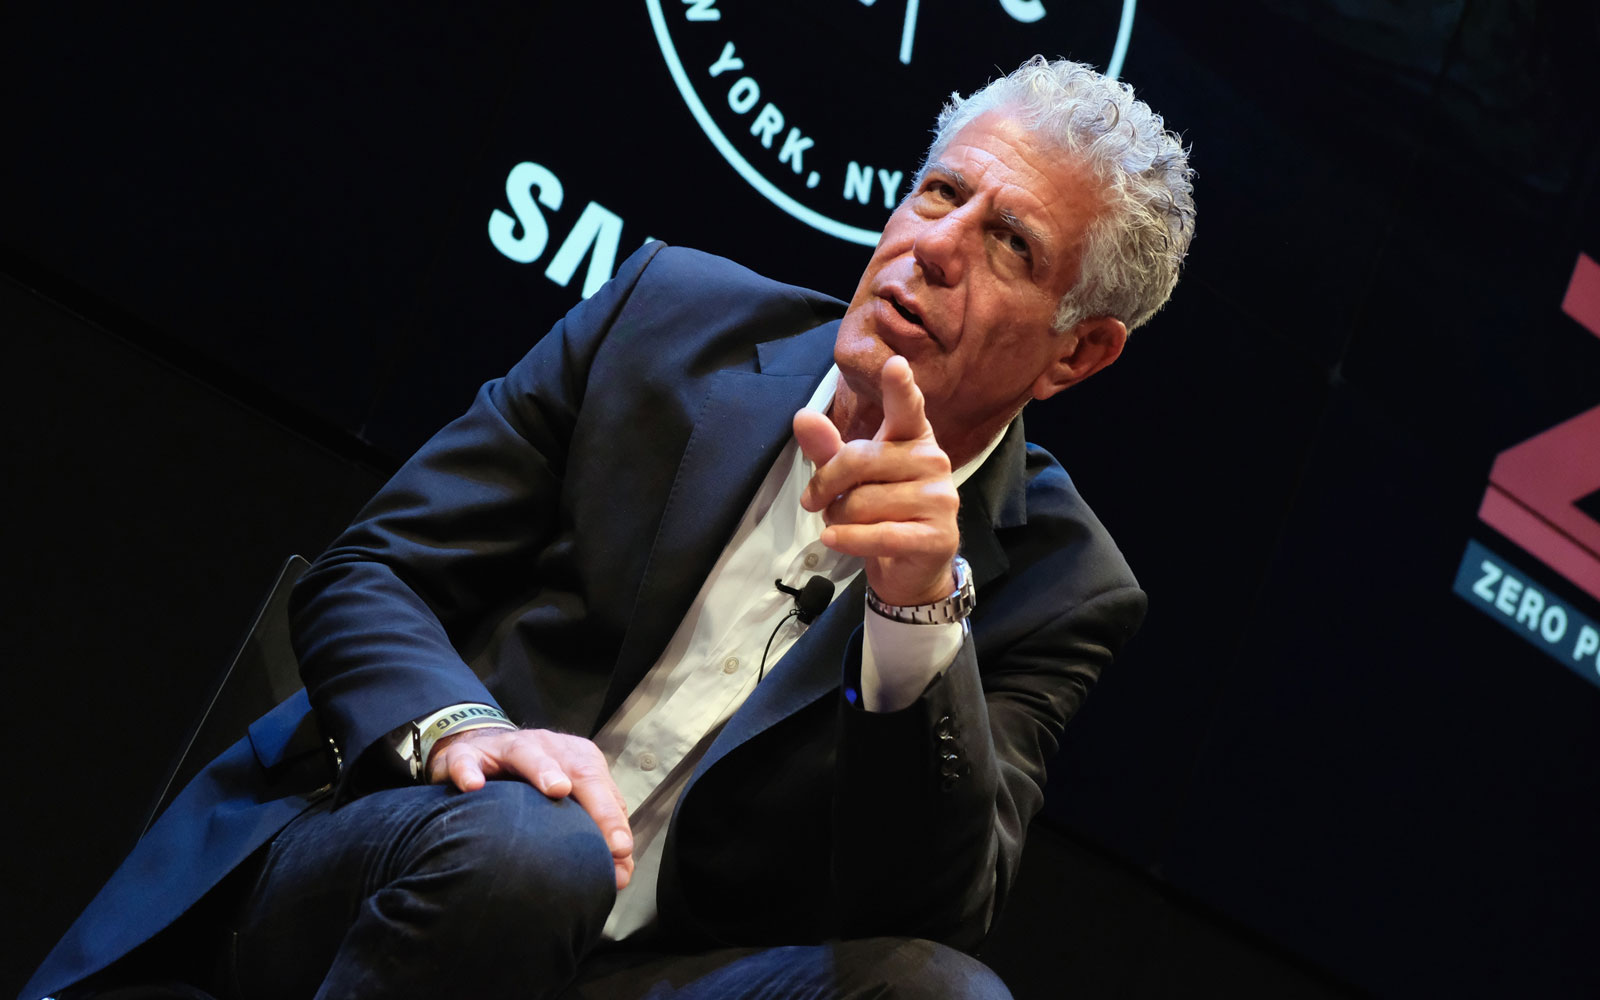 Anthony Bourdain in Buenos Aires